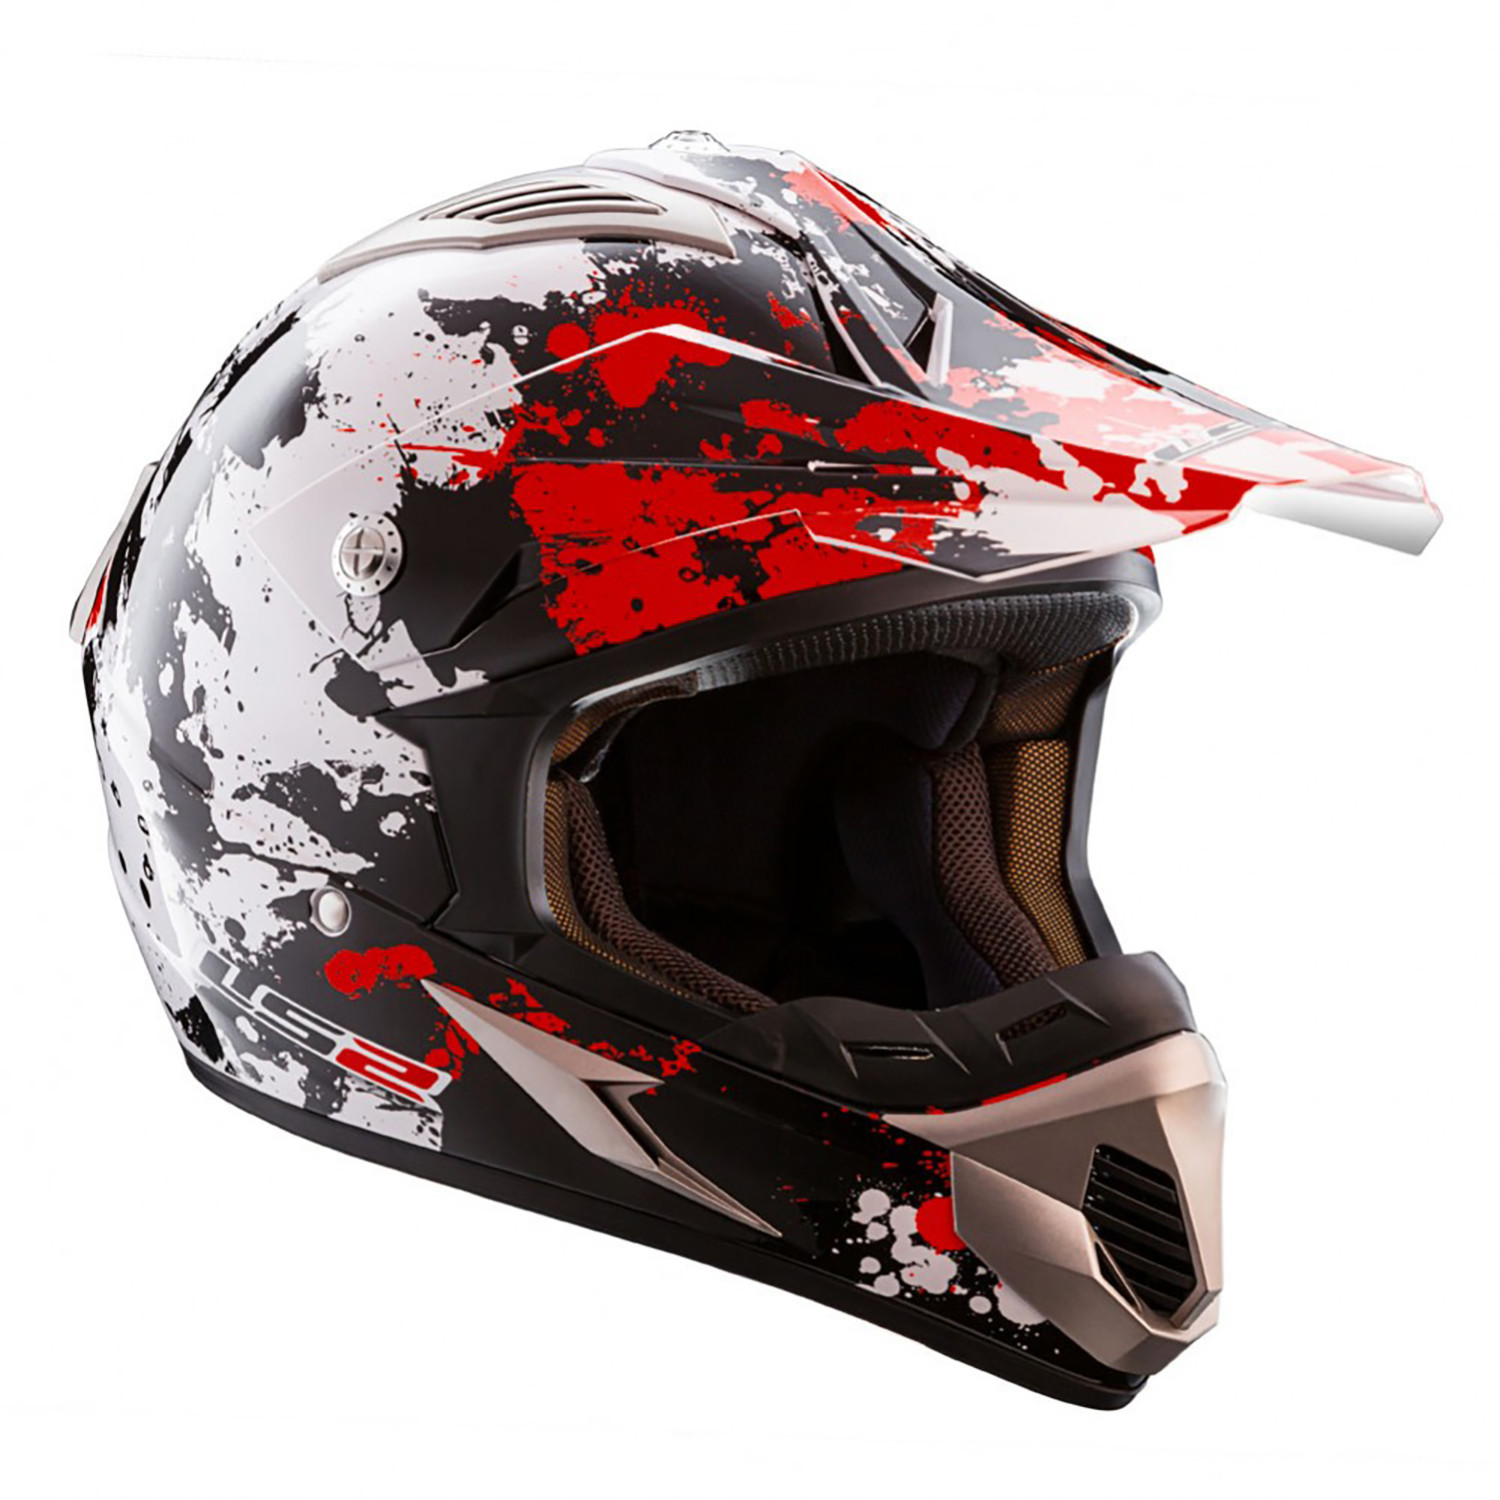 Casco Cross LS2 MX 433 Blast Rojo